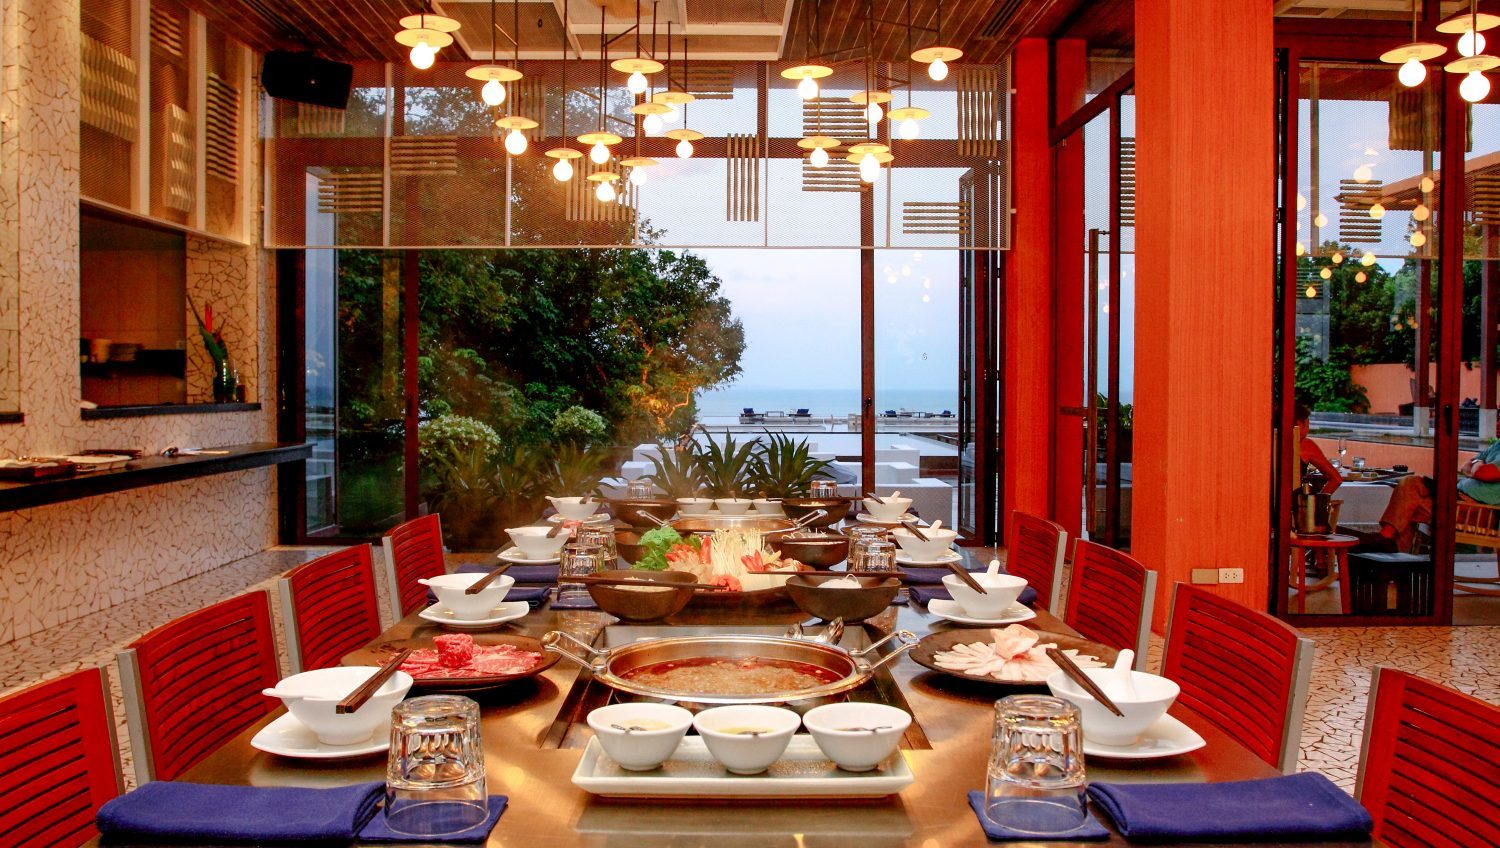 3.baba-hotpot-best-shabu-poolclub-restaurants-in-phuket-gourment-traveller-best-food-baba-phuket-luxury-pool-villa-thailand